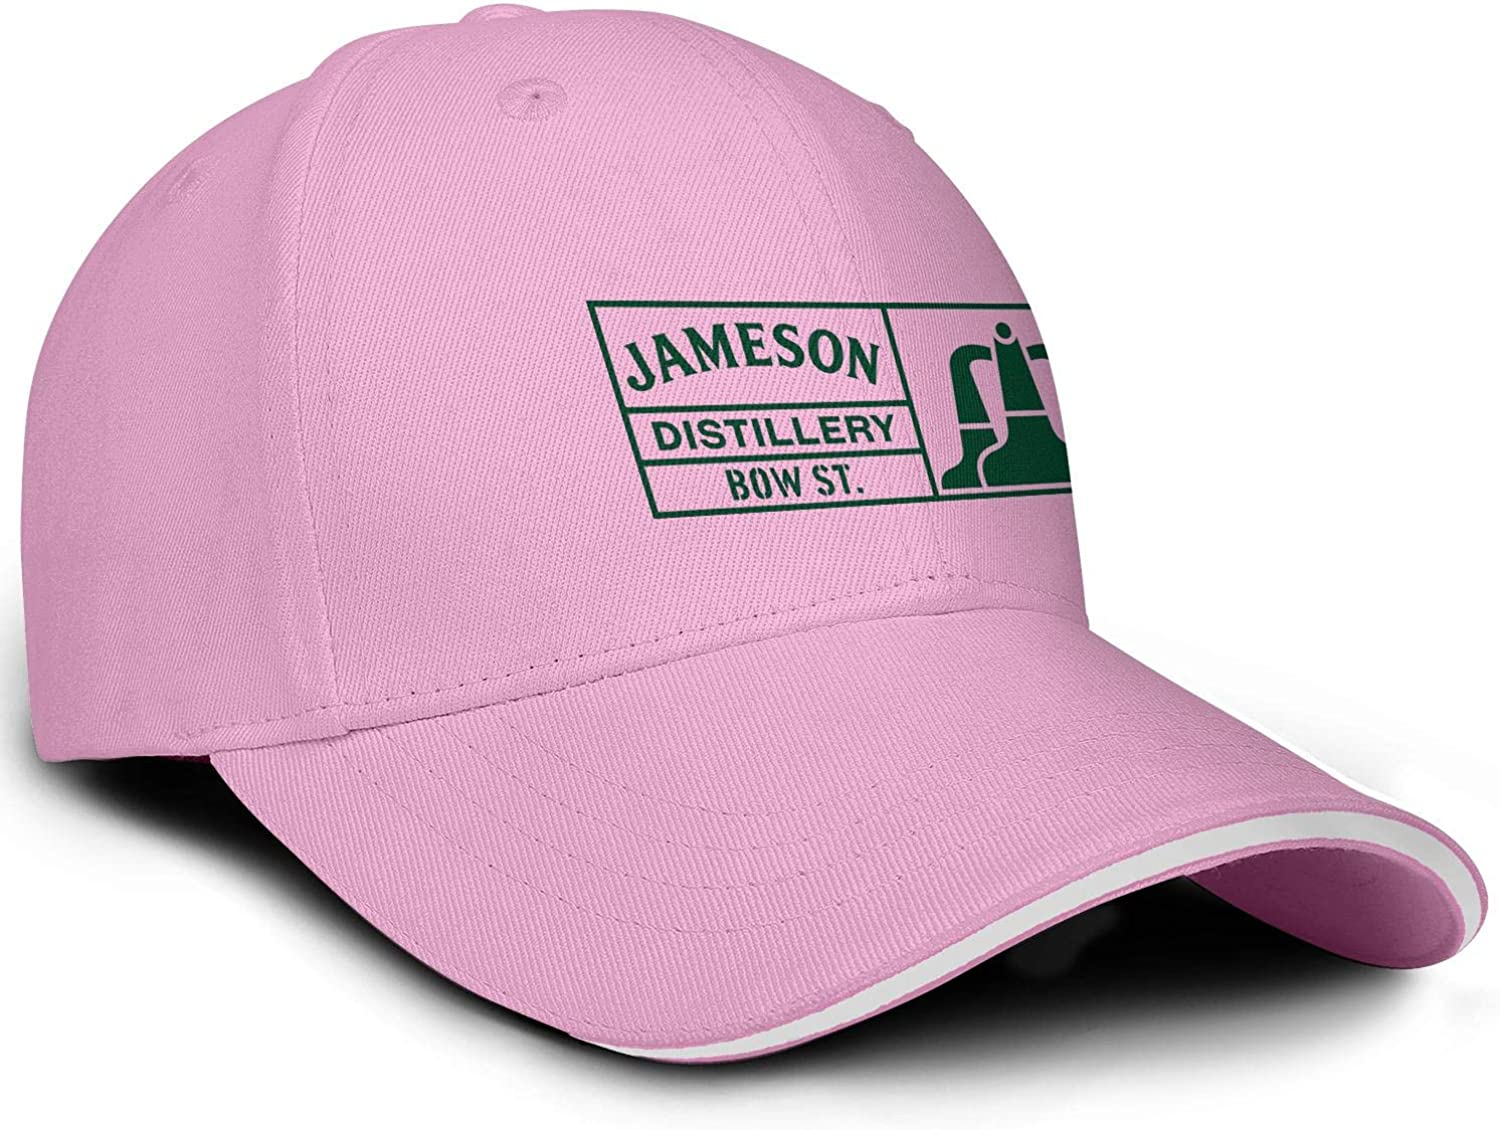 Mans Womens Jameson-Distillery-Bow-ST. Cap Casual Sports Caps Hats